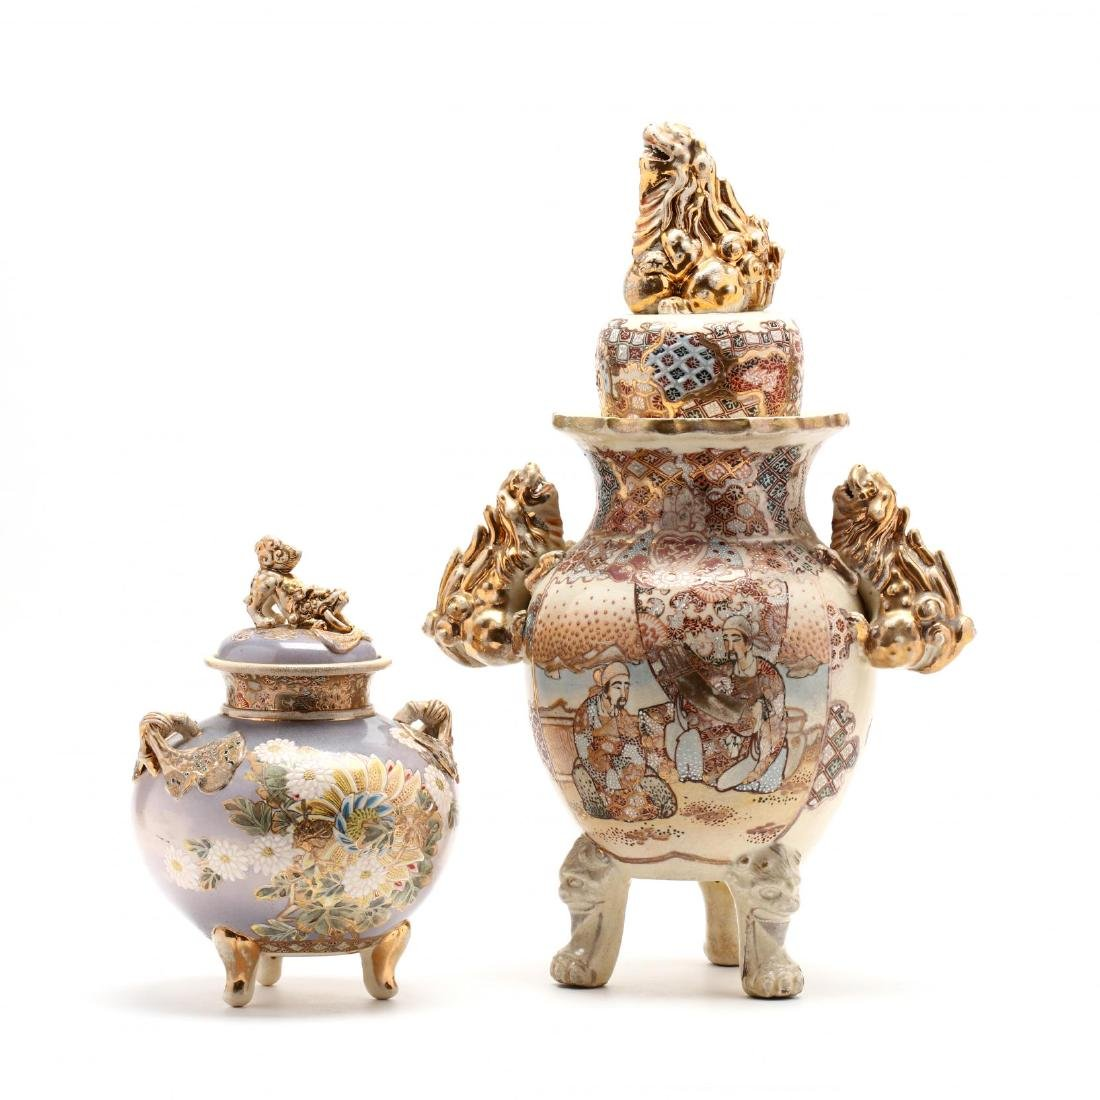 Two Japanese Satsuma Covered Urns